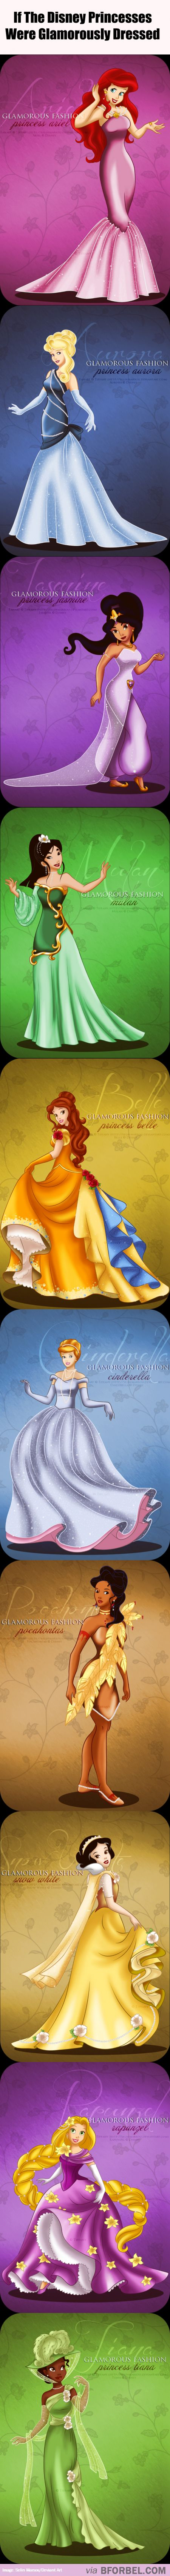 10 Glamorously Dressed Disney Princesses…<<<I want Belle's and Mulan's dresses